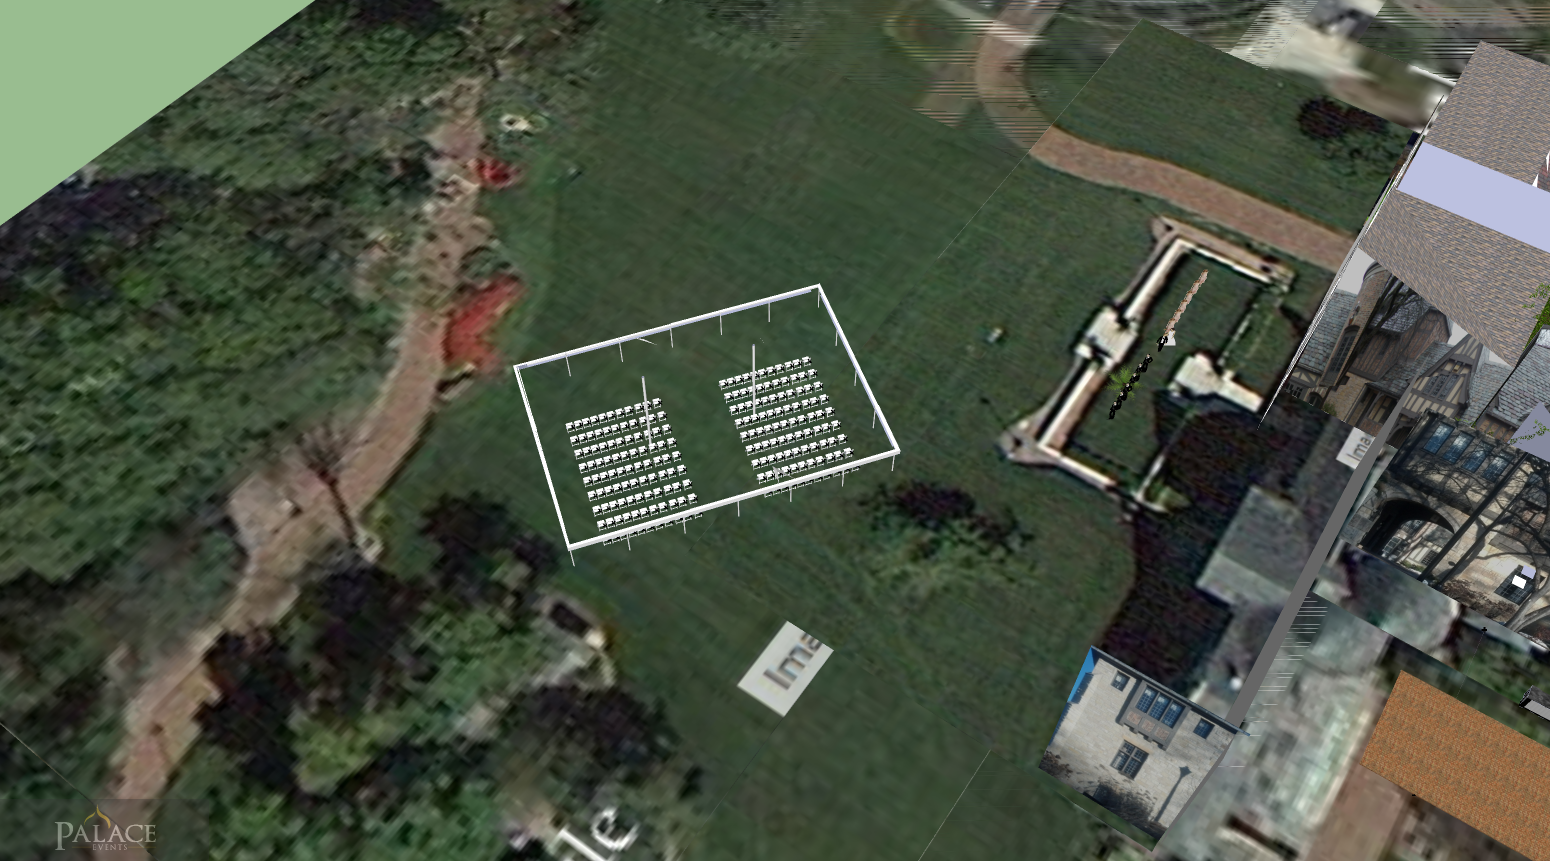 5.23.2015 Swee Overhead View.png